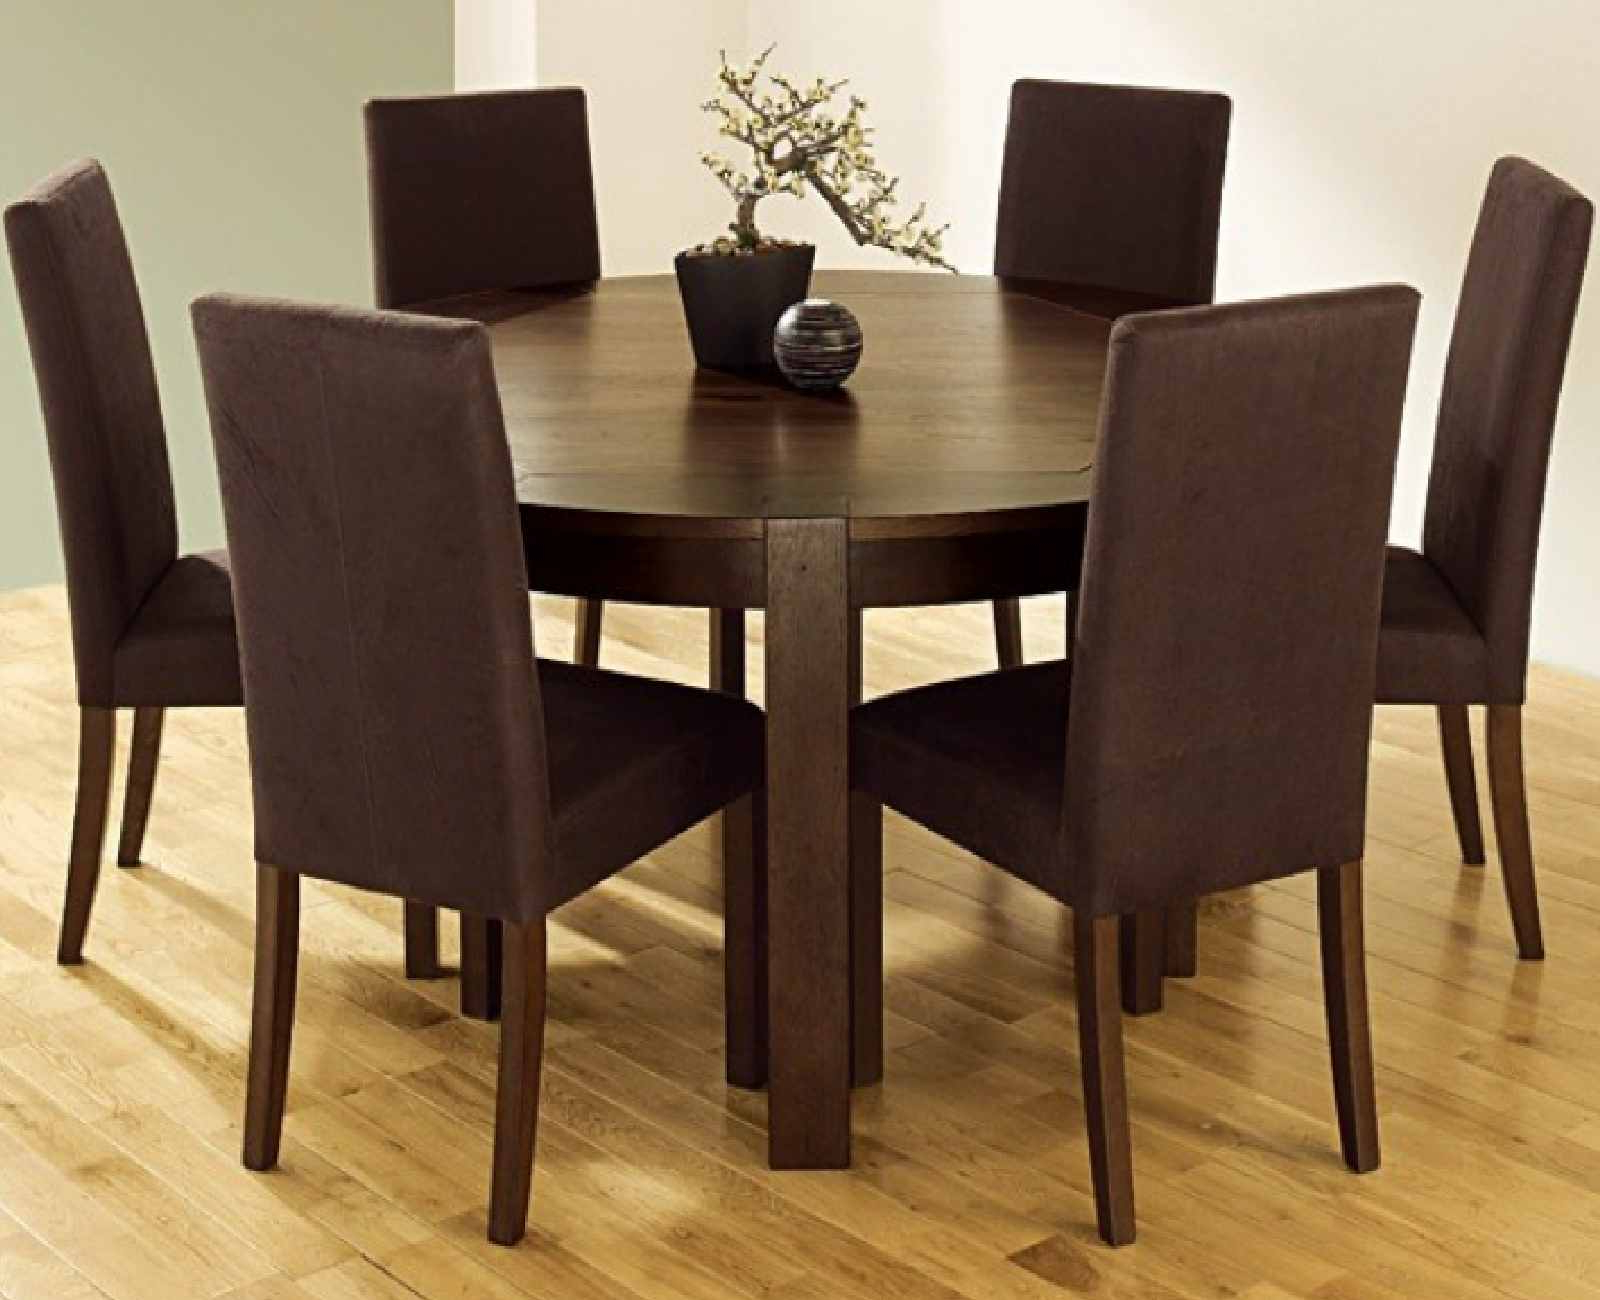 Lonon 3 Piece Dining Sets Inside Most Recently Released 3 Piece Round Dining Set (View 6 of 25)